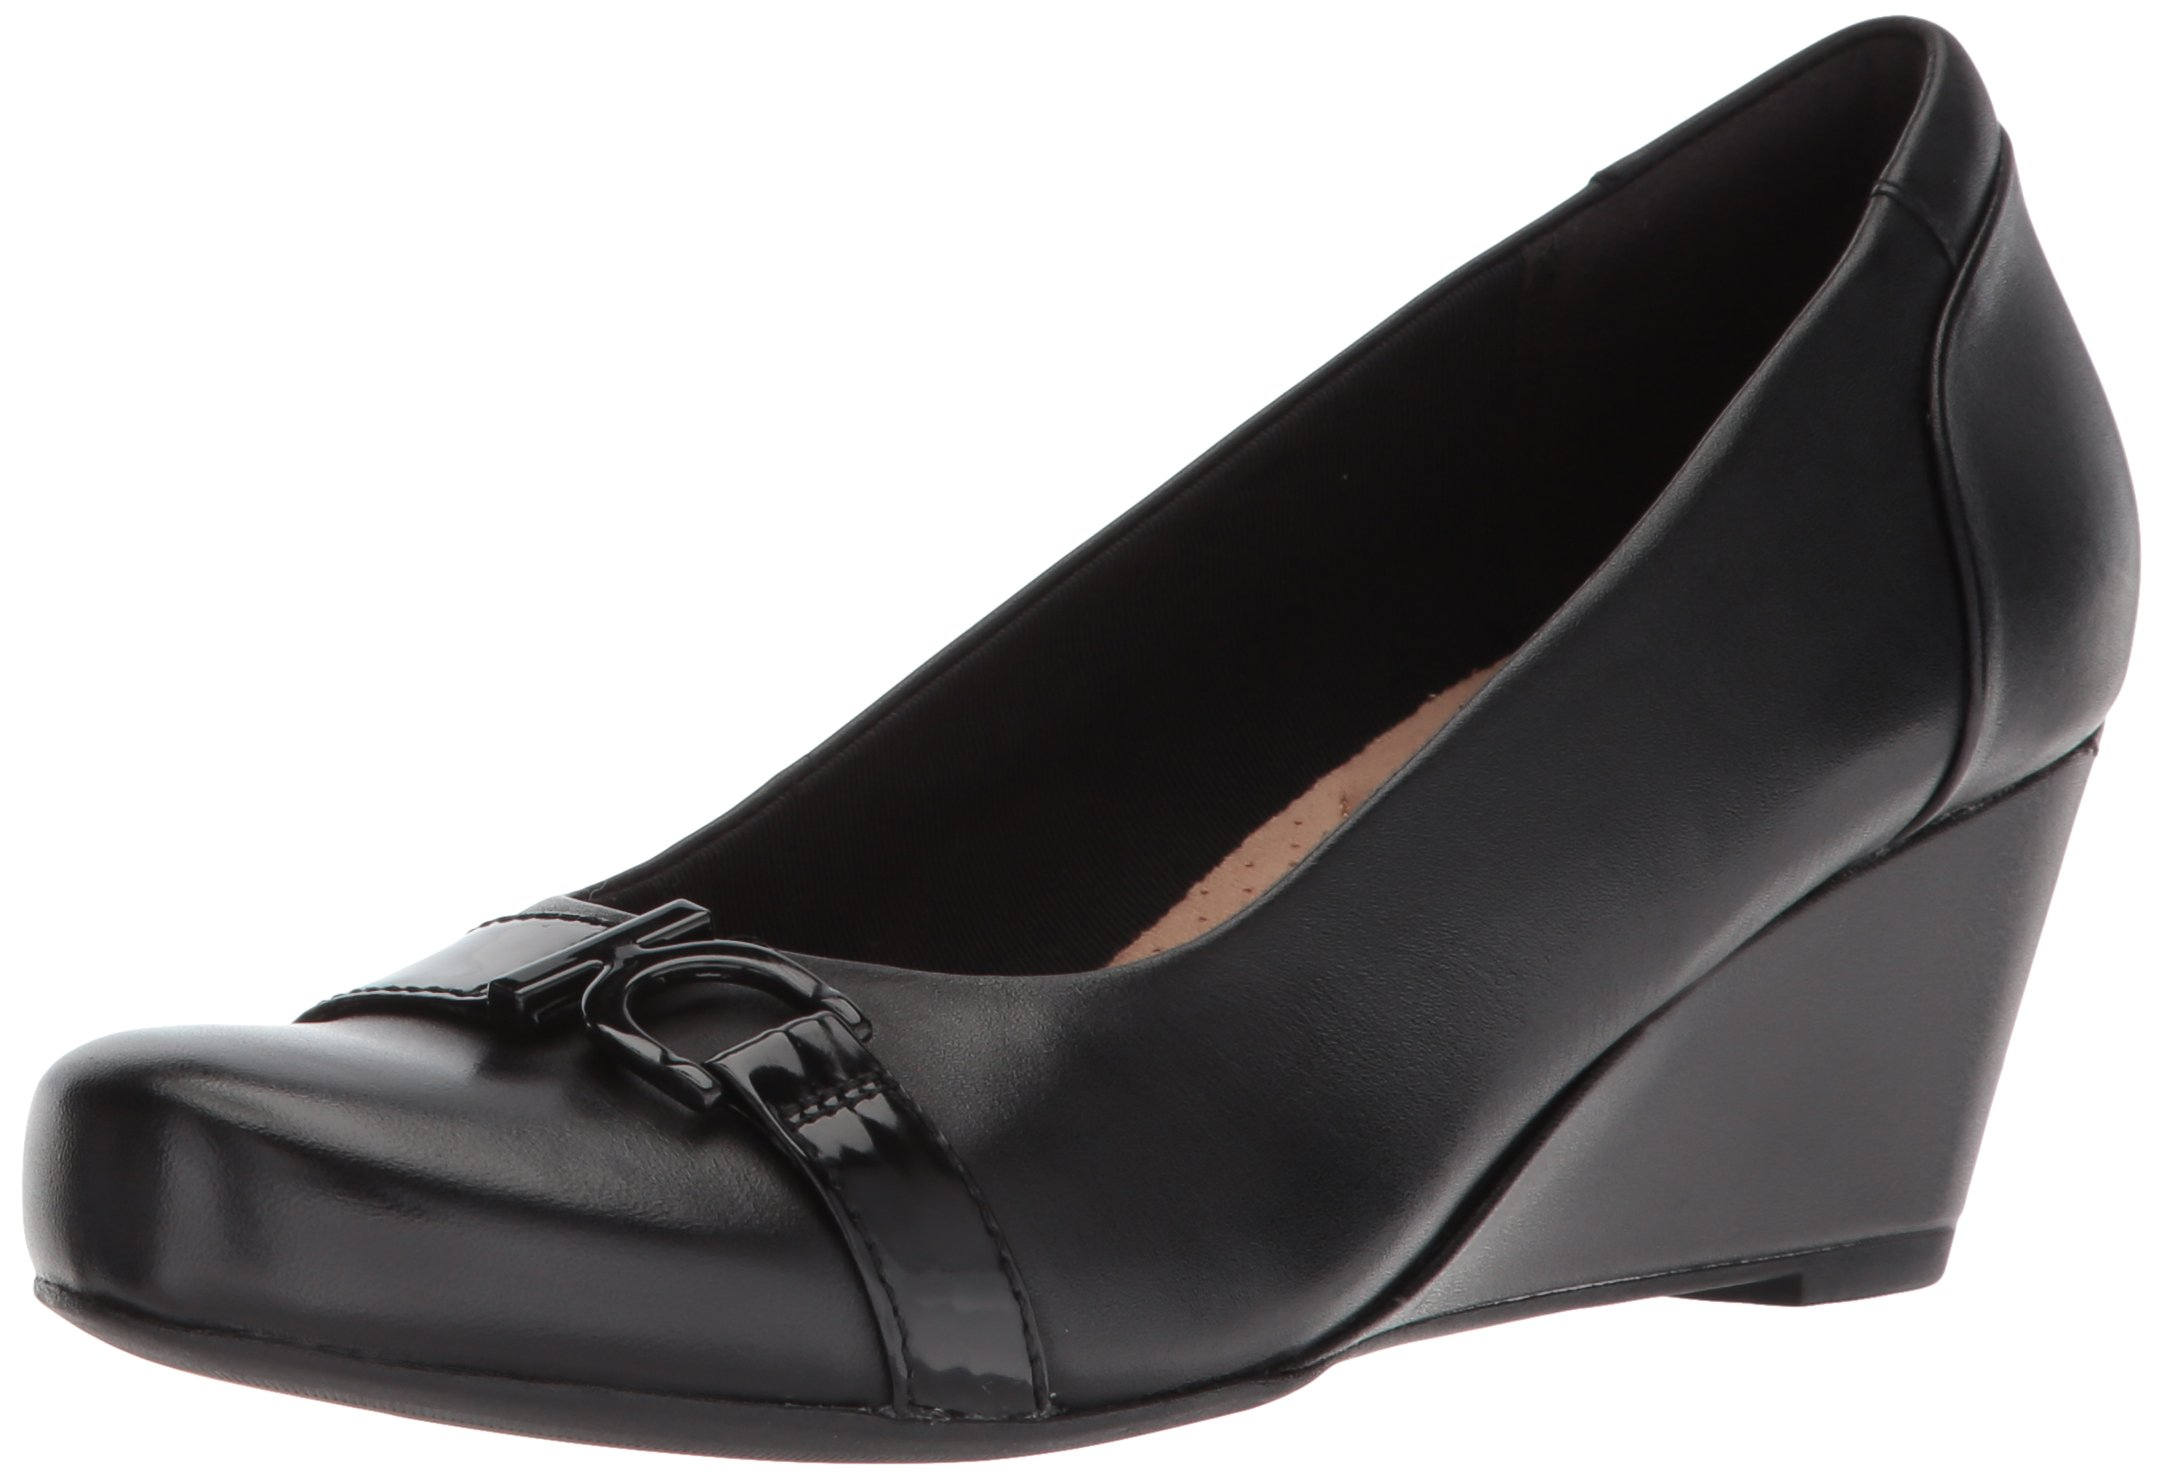 CLARKS Women's Flores Poppy Pump, Black Leather, 7.5 B(M) US